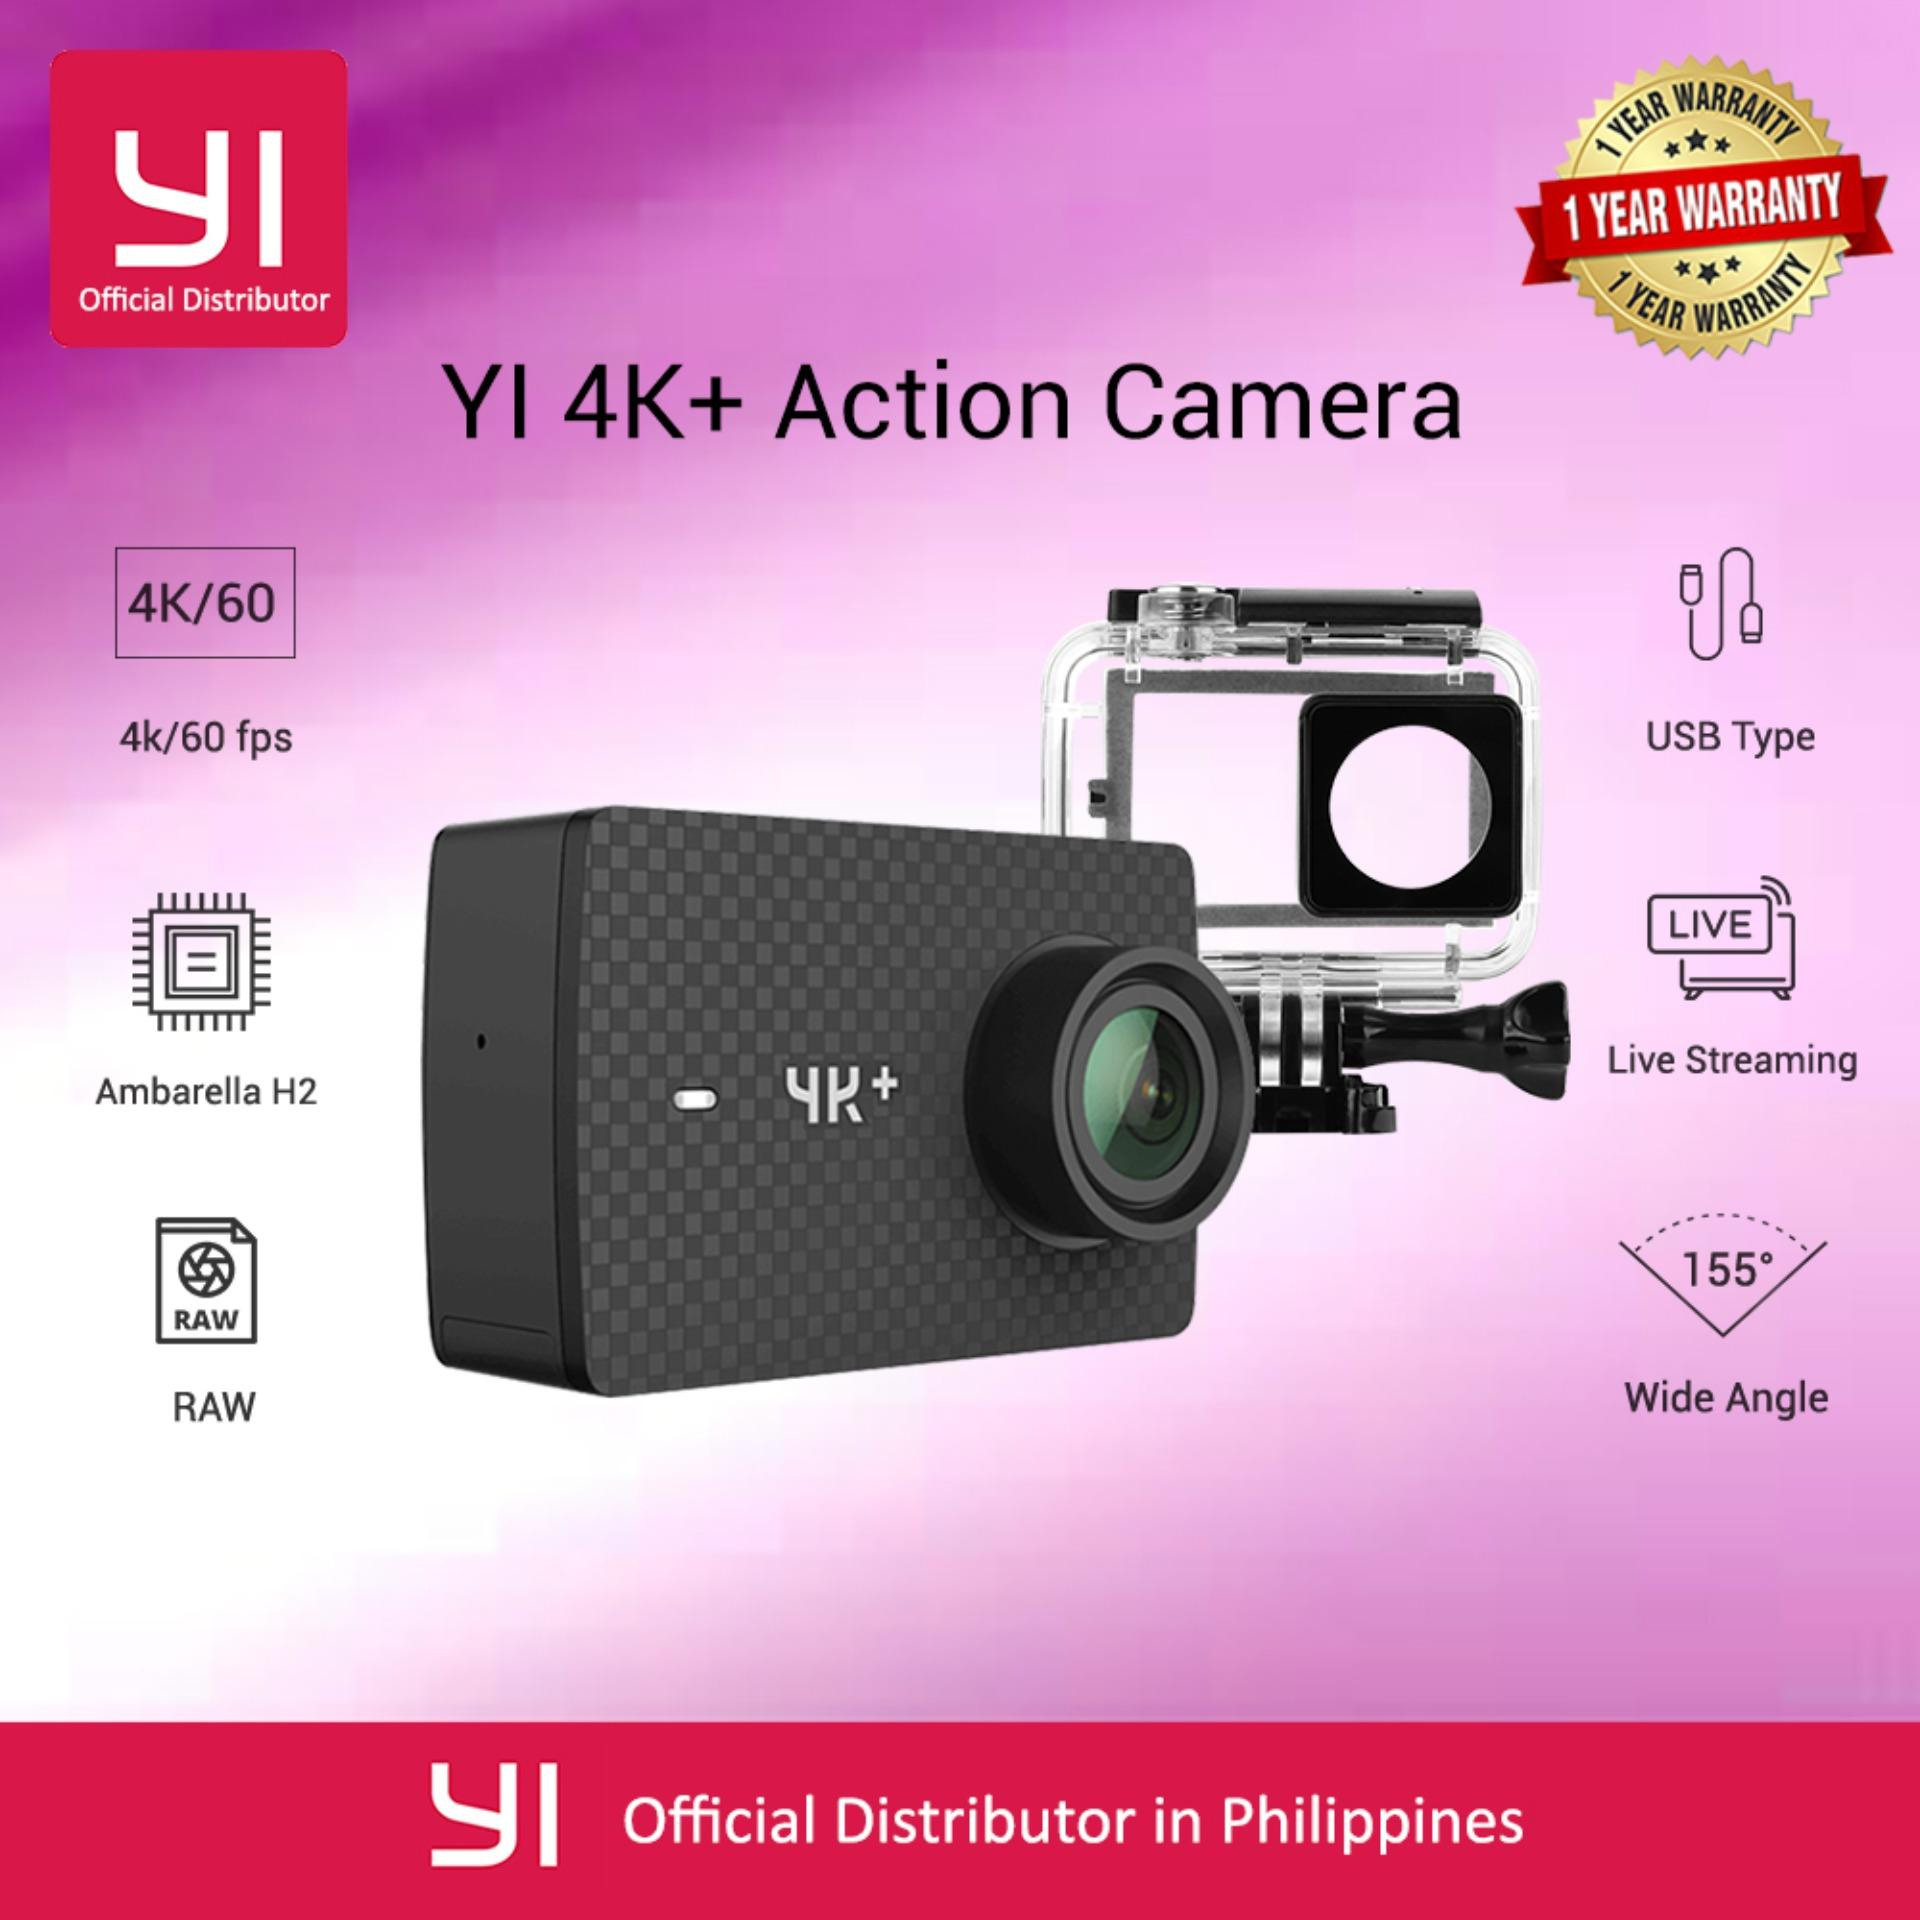 Buy Sell Cheapest Yi Best Quality Product Deals Philippines Store Original Dome 720p Camera International Version White 4k Plus Action Only Edition First 60fps Amba H2